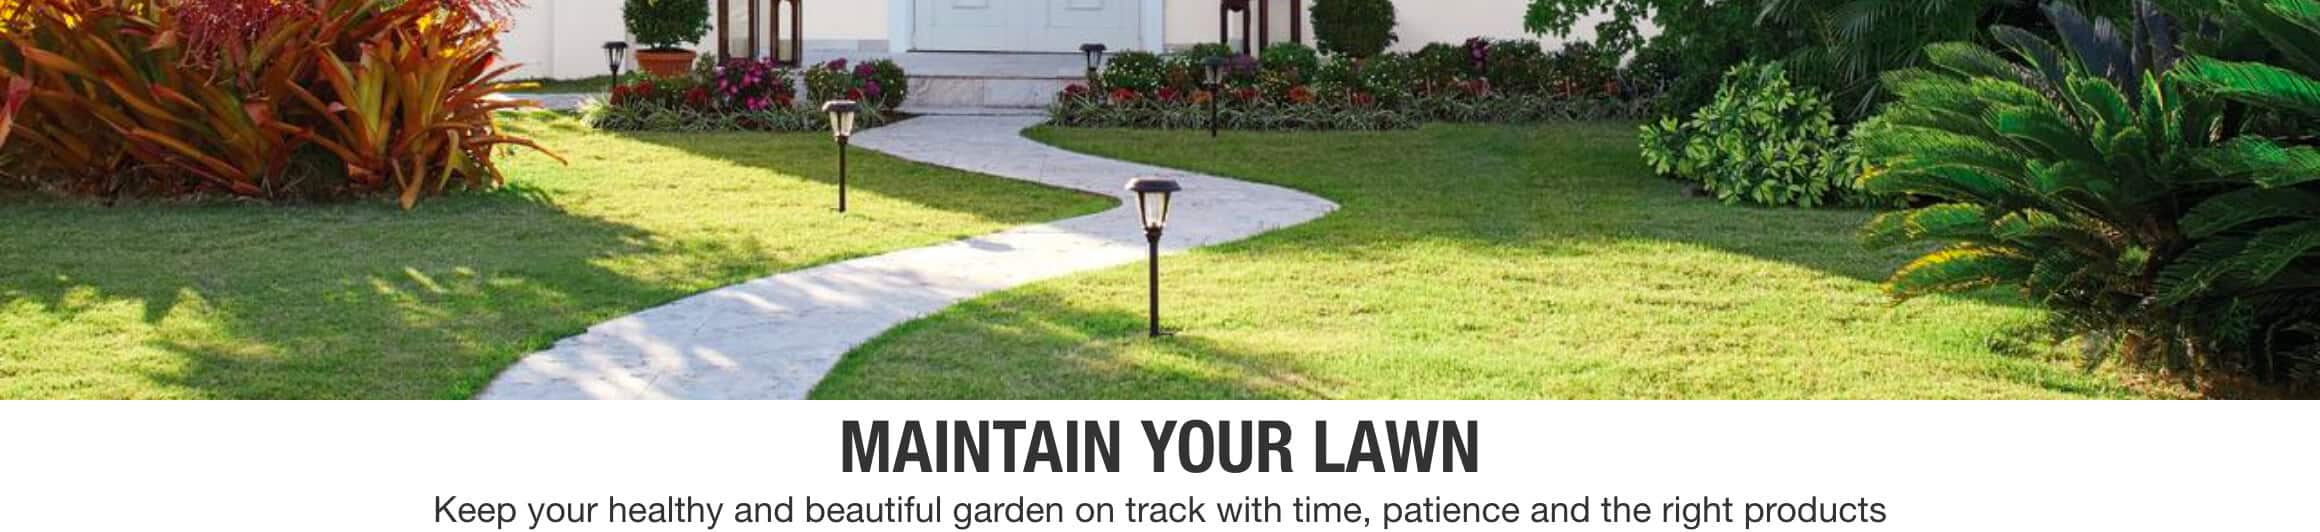 MAINTAIN YOUR LAWN Keep your garden healthy and beautiful with time, patience and the right products